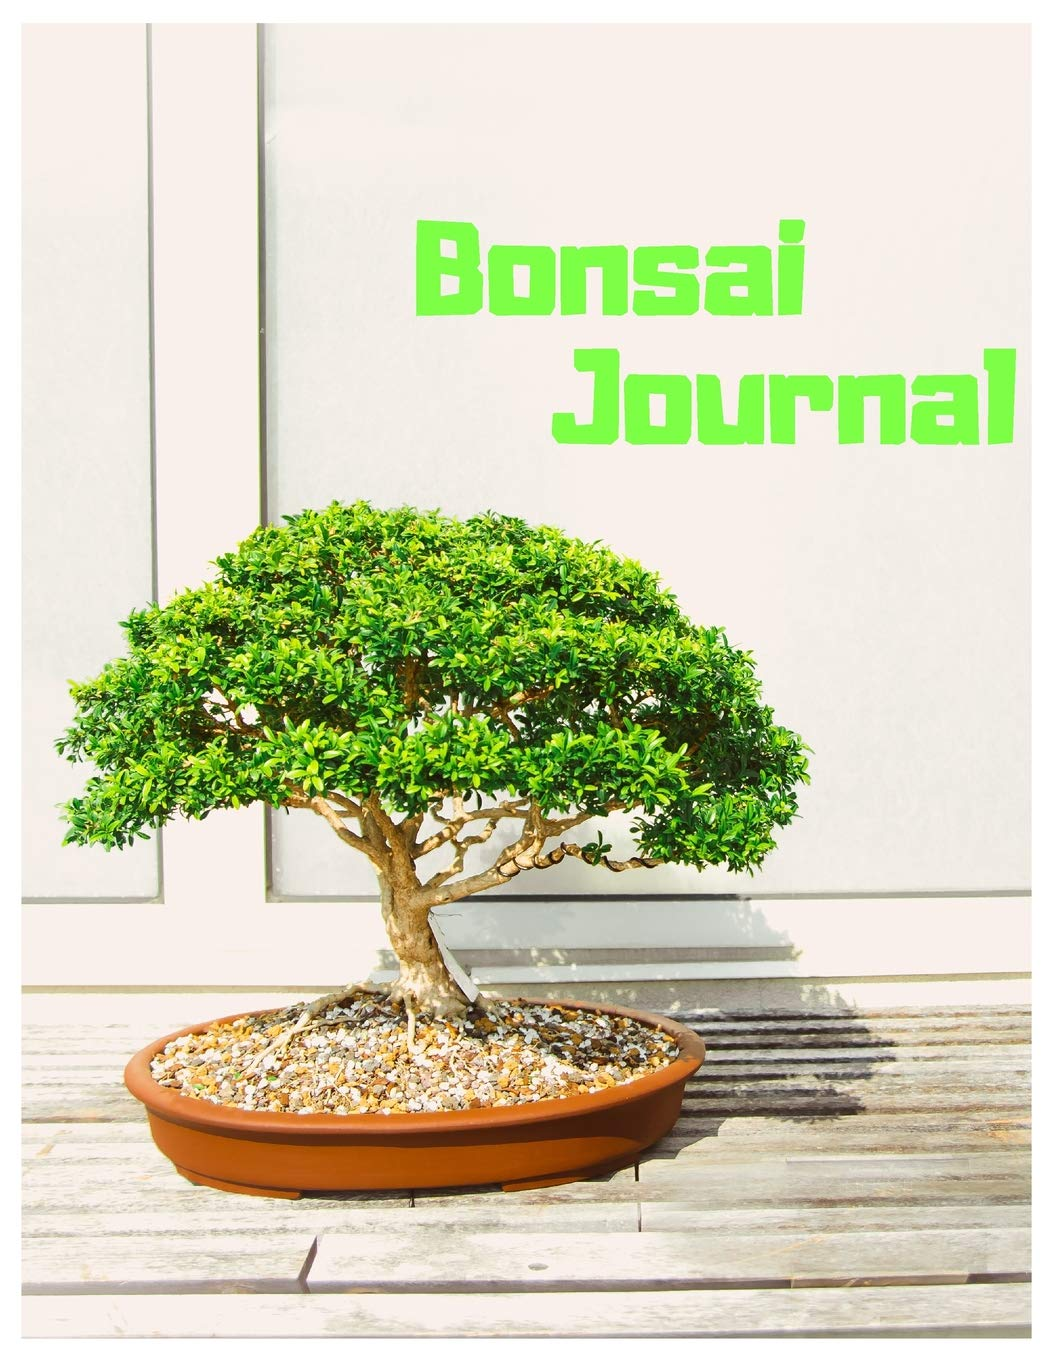 Bonsai Journal Bonsai Tree Journal Notebook For Gardening Lovers To Write In Journal Paper 110 Lined Pages 8 5x11 Inch Featuring Sunny And Green Design Journals Growing 9781092111836 Amazon Com Books